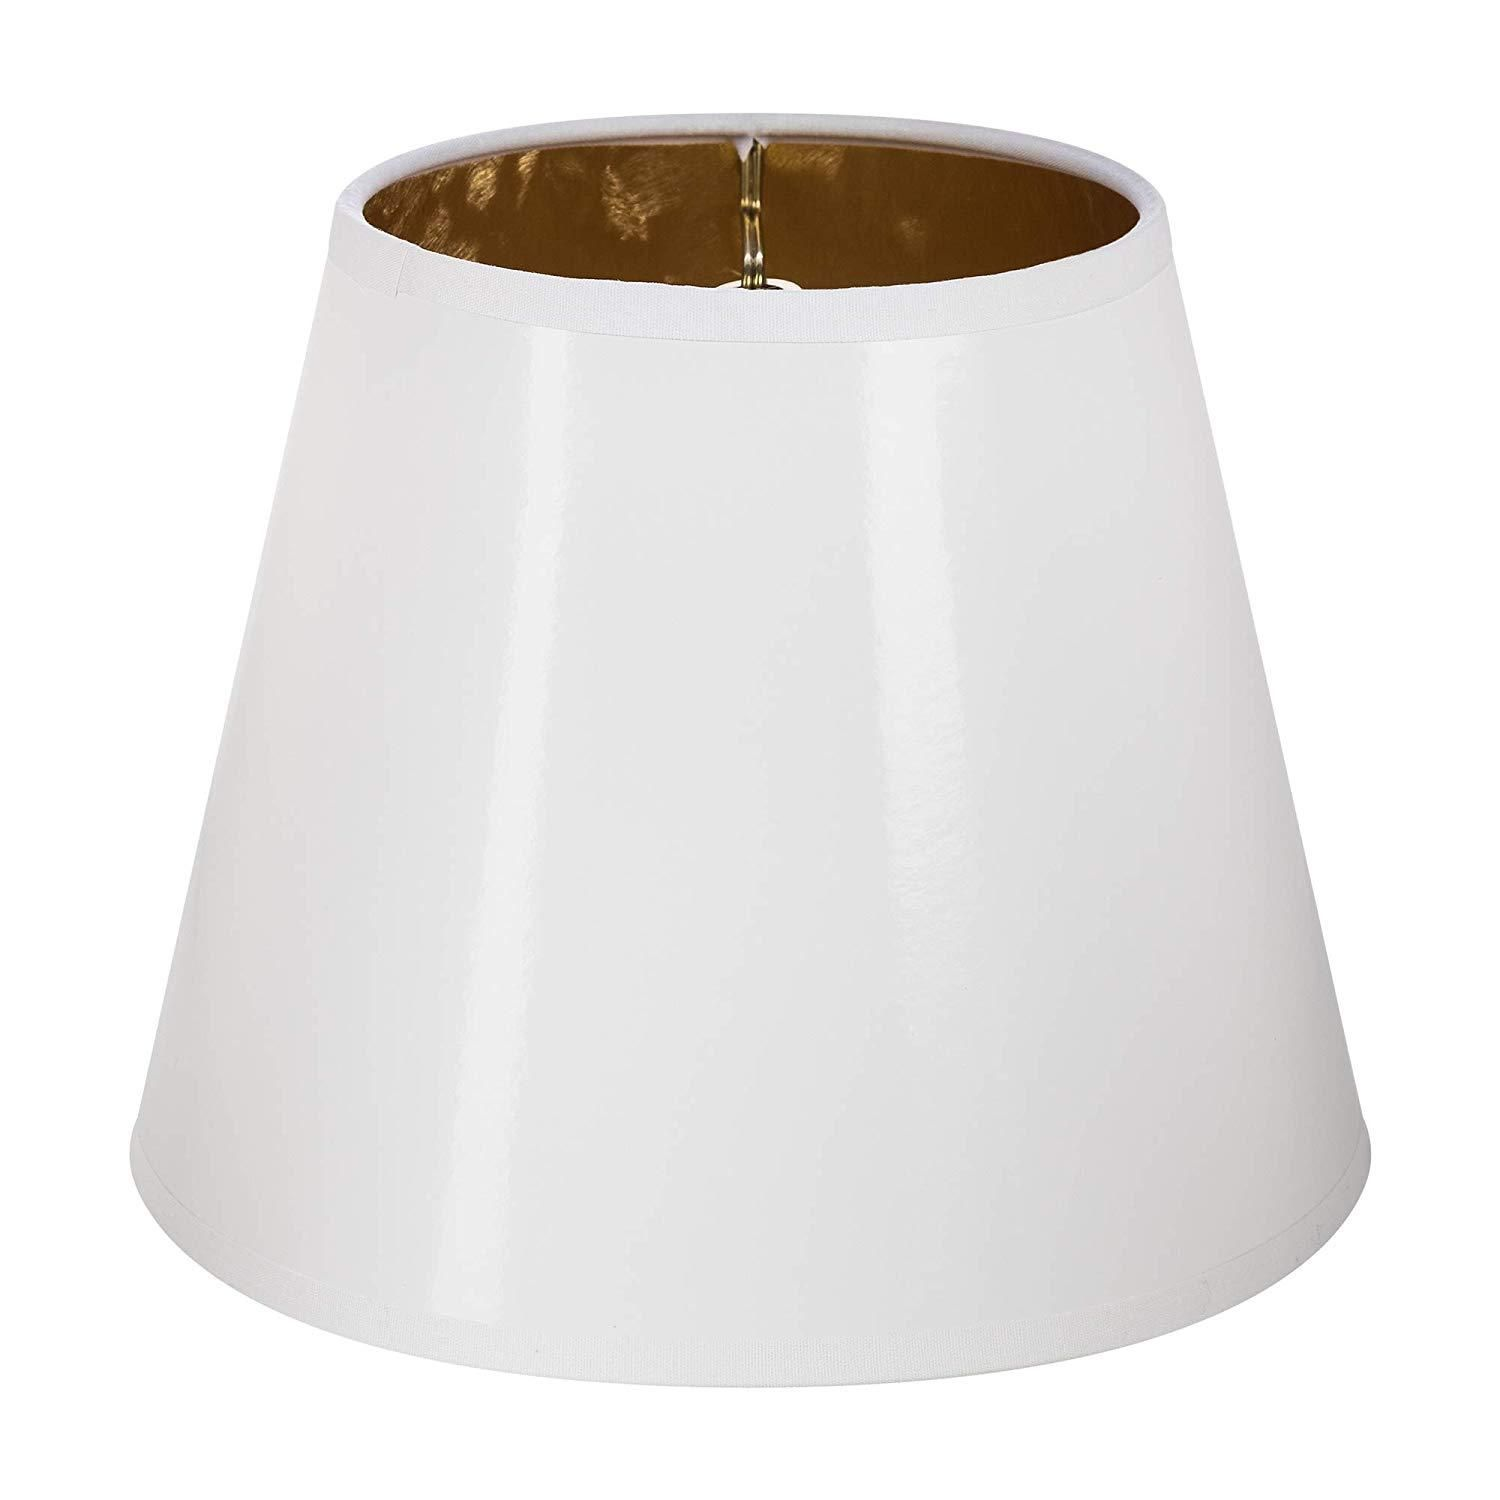 White With Gold Interior 12 Inch Washer Fitter Lampshade Replacement 5x12x8 5 Lamp Shades Lamp Shade Table Lamp Shades